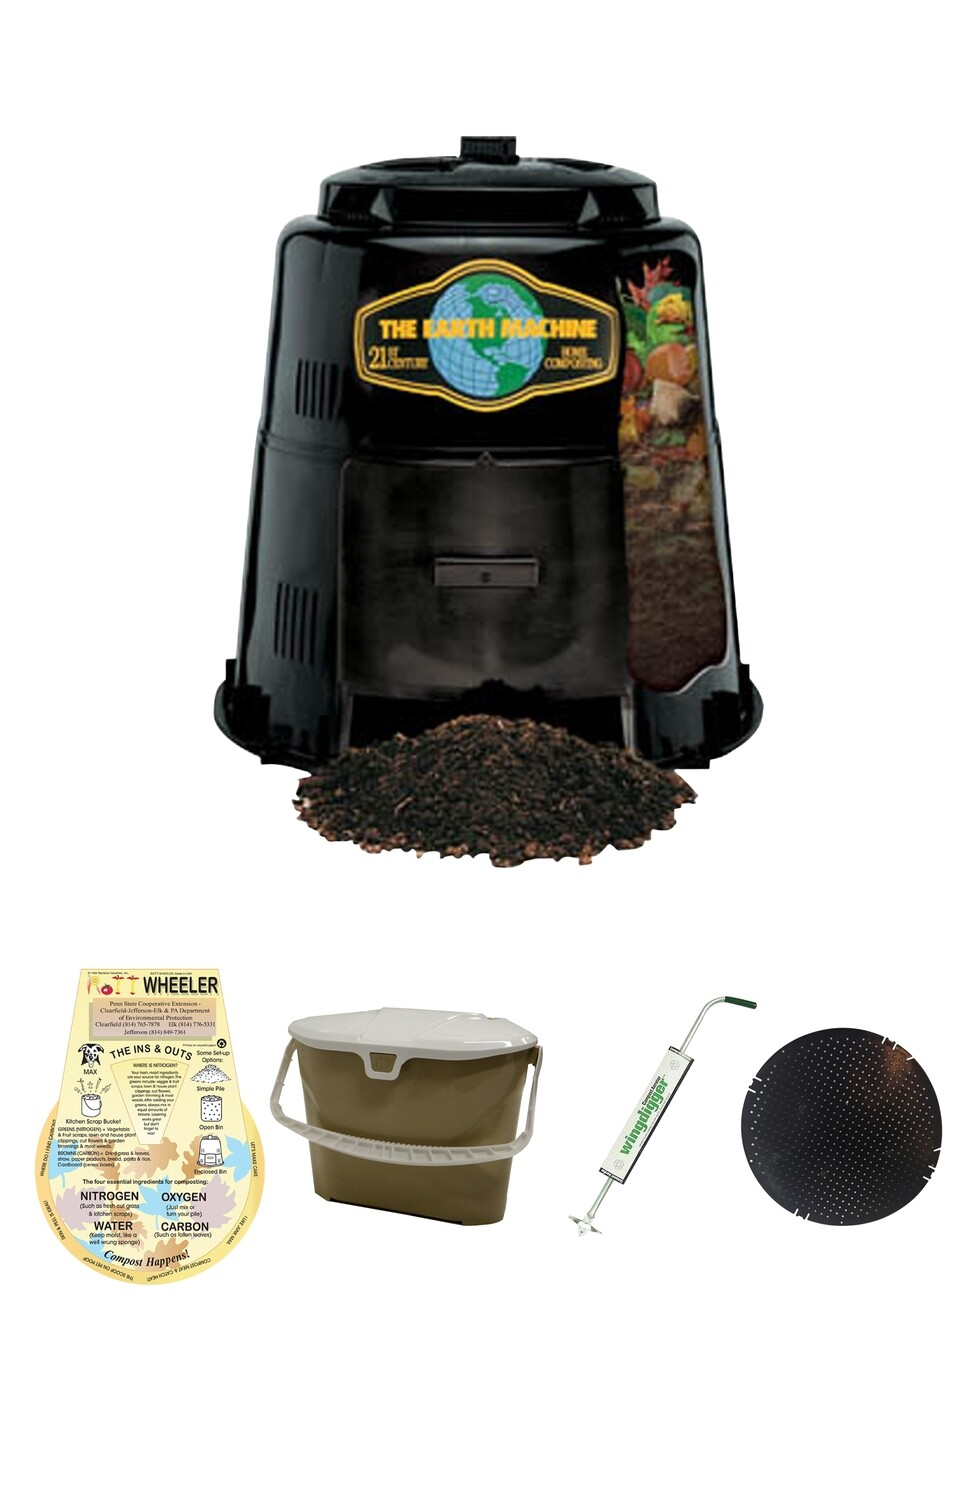 KIT 4 - Best Value: Includes the Earth Machine, Rottwheeler, Kitchen Collector, Wingdigger & Rodent Screen